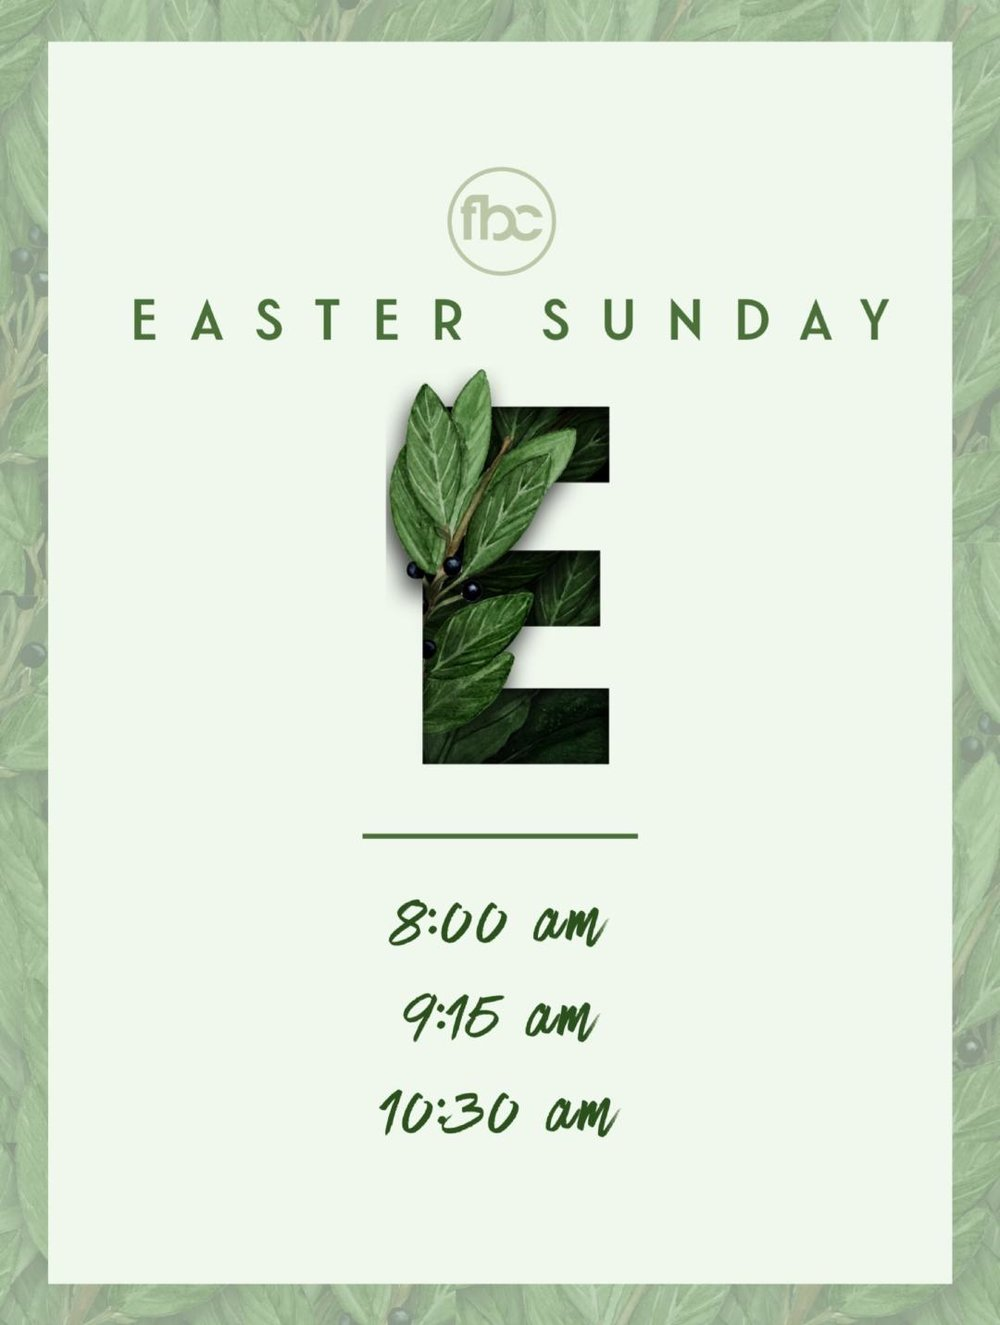 Easter Sunday - 8:00 am , 9:15 am & 10:30 am